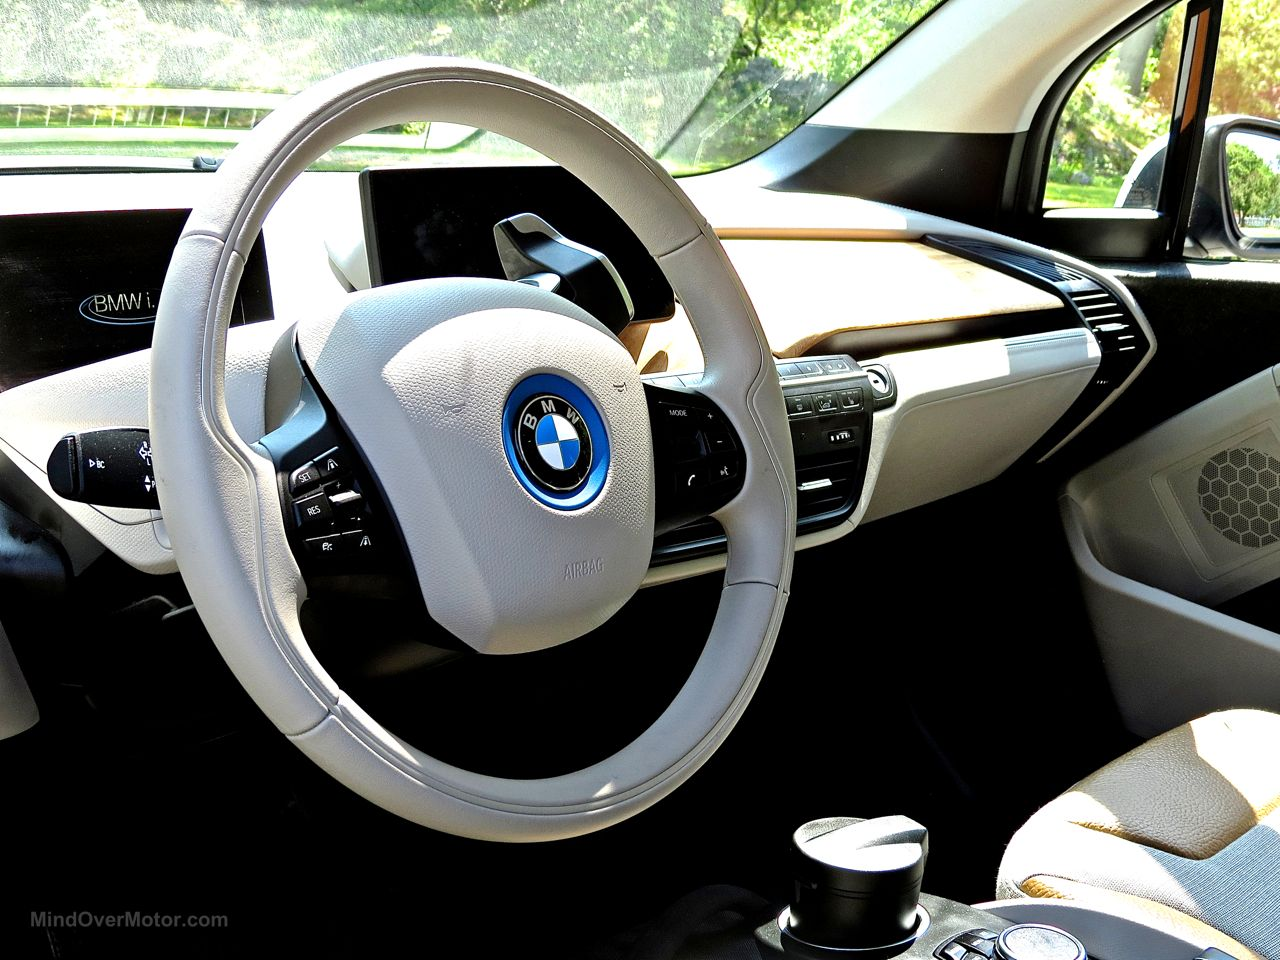 BMW i3 Electric Car Review 11